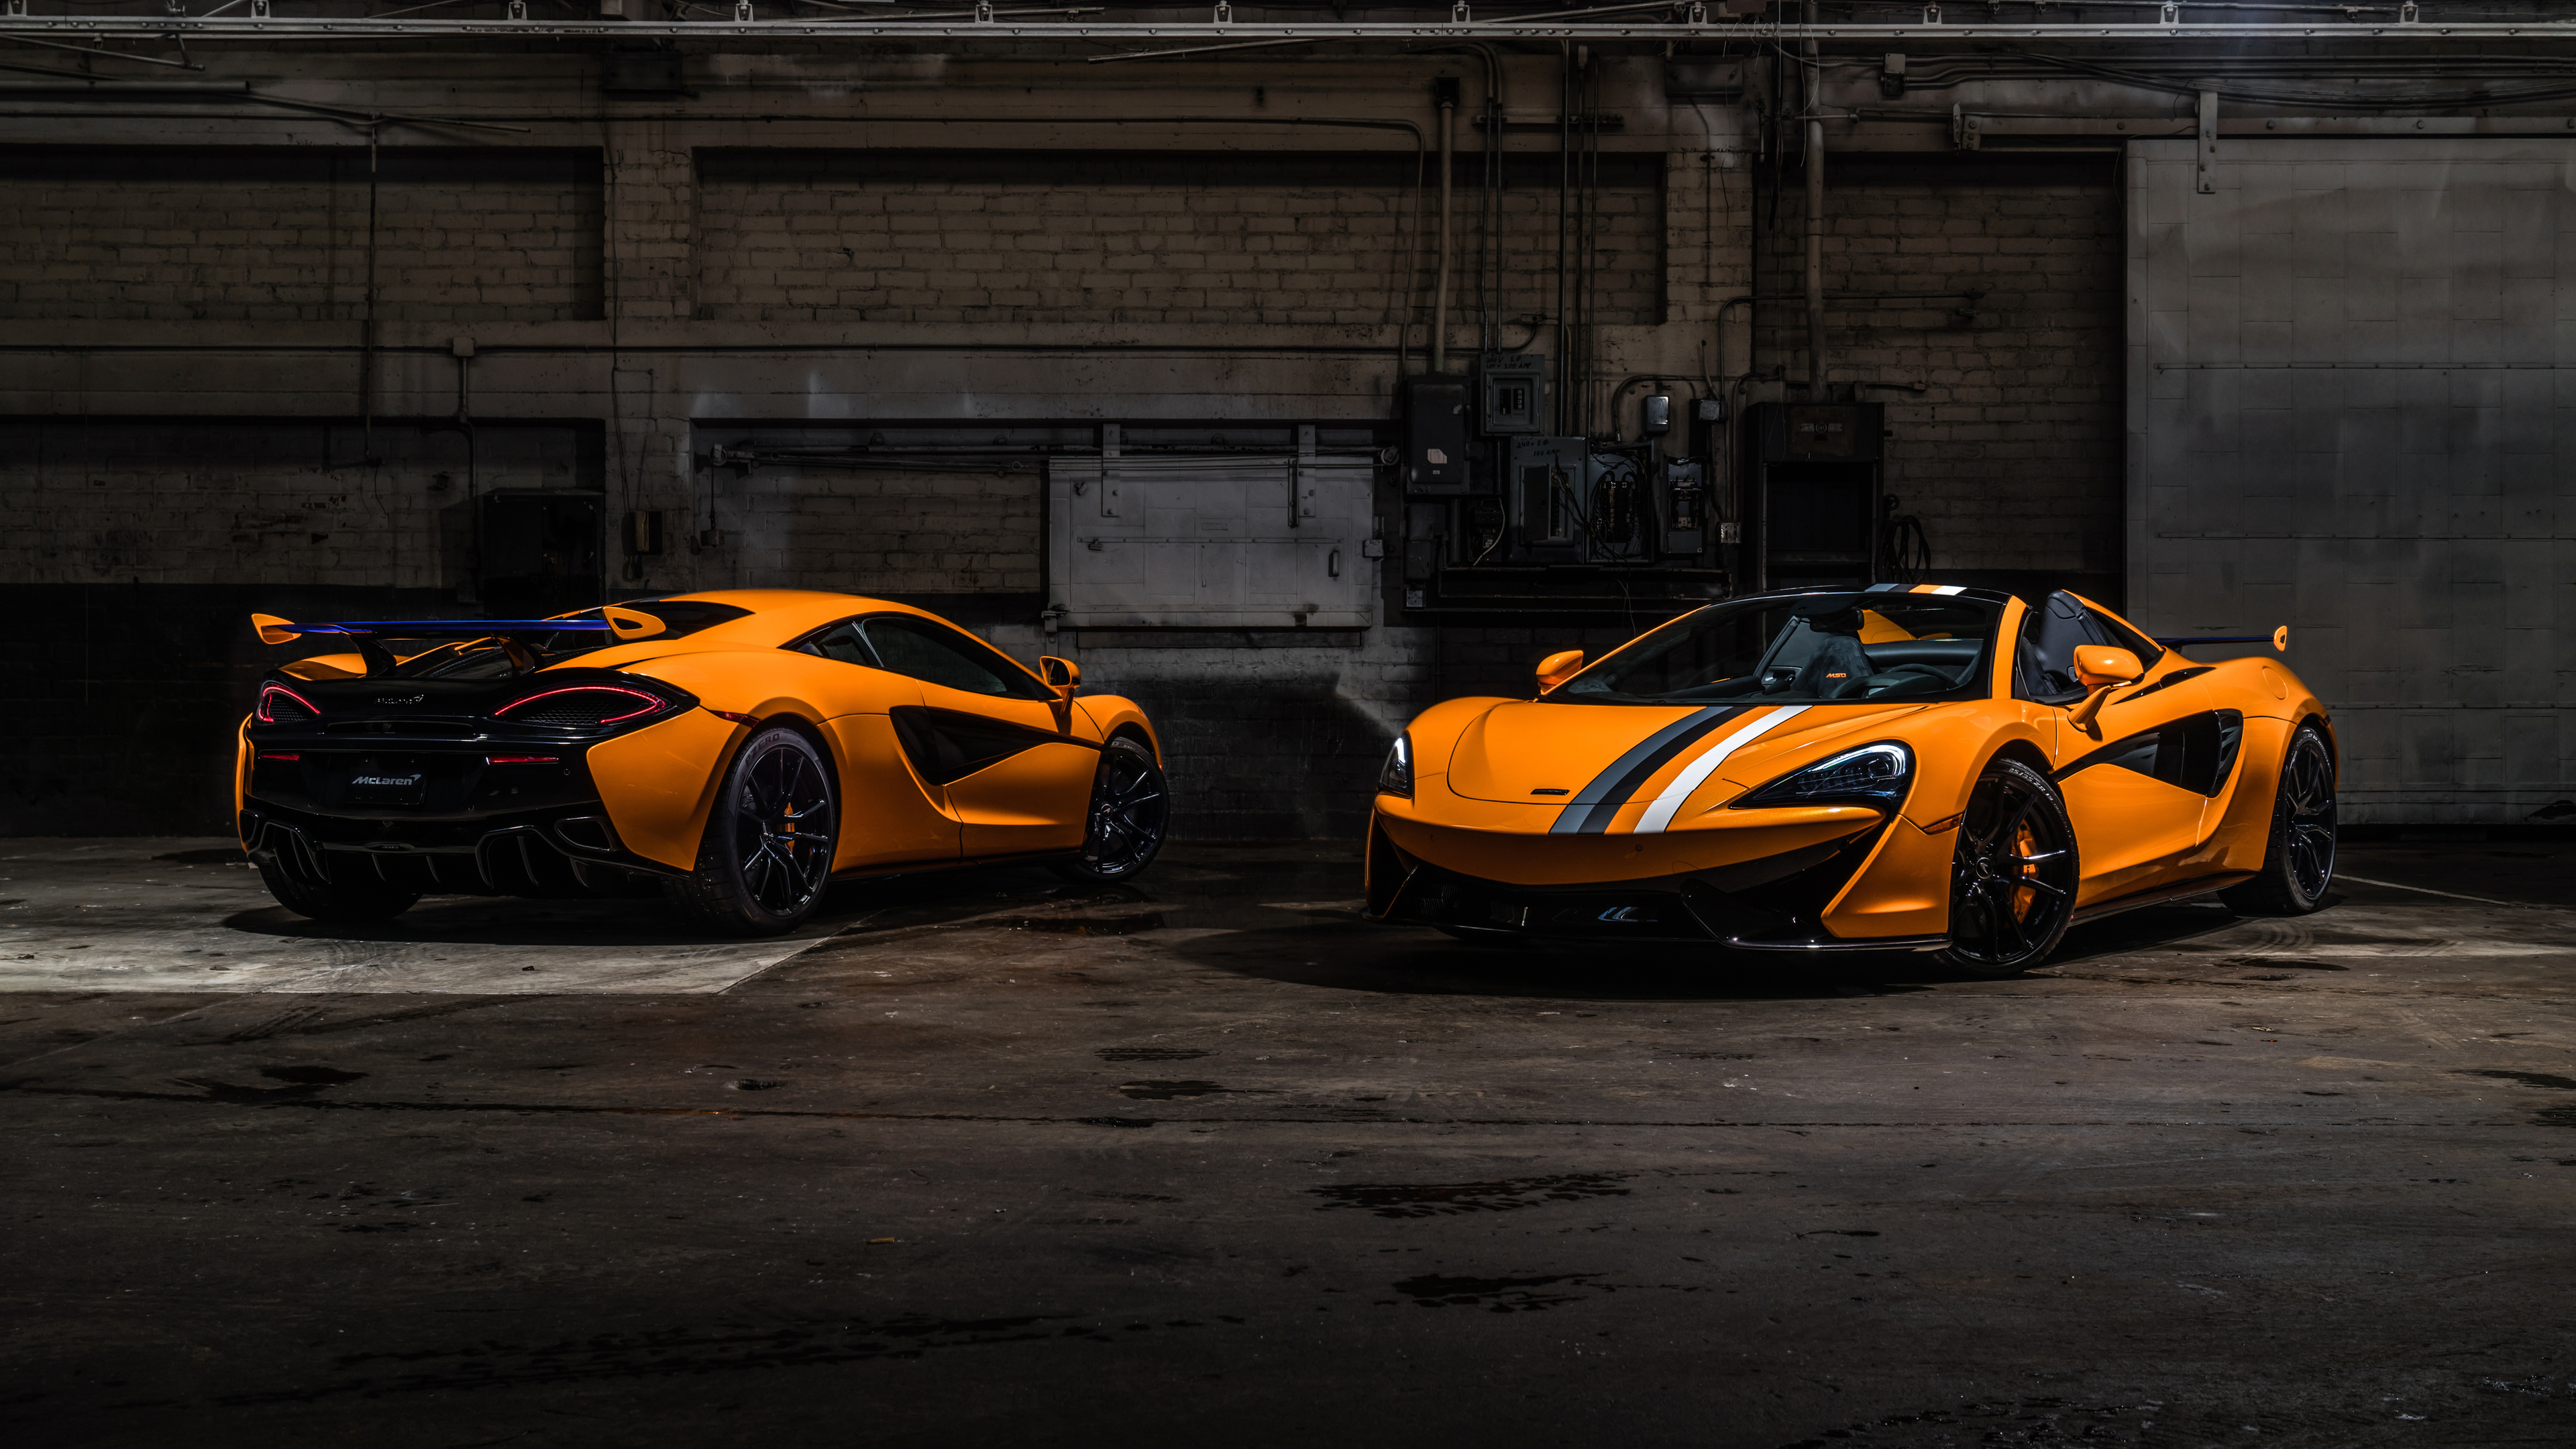 mclaren mso 570s spider and mso 570s coupe papaya spark 4k 1546362277 - McLaren MSO 570S Spider and MSO 570S Coupe Papaya Spark 4k - mclaren wallpapers, mclaren 570s spider wallpapers, hd-wallpapers, cars wallpapers, 4k-wallpapers, 2018 cars wallpapers